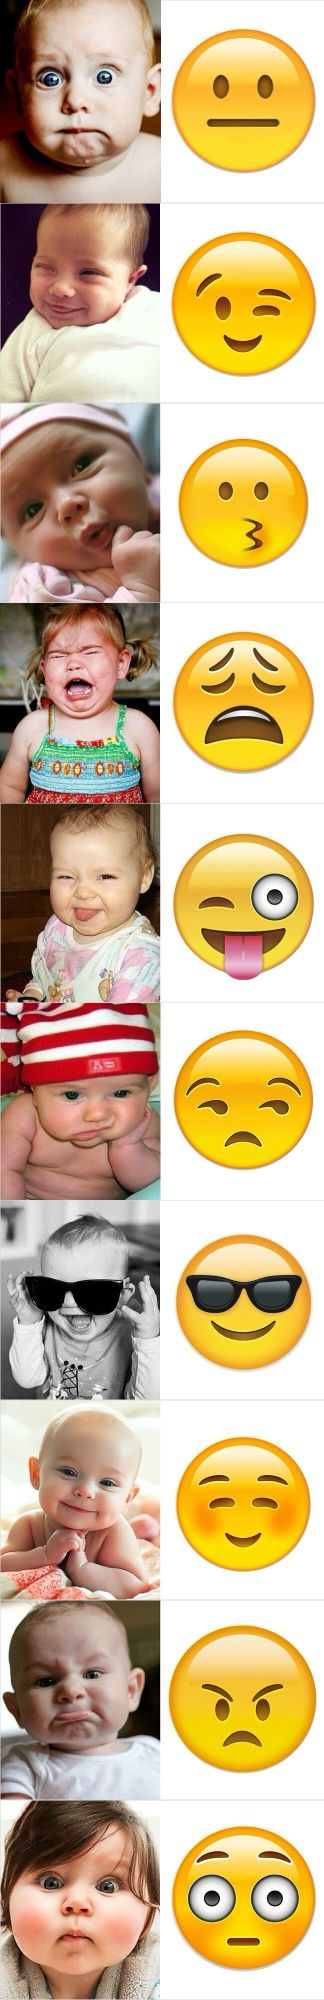 Babies Demonstrate Emoticons